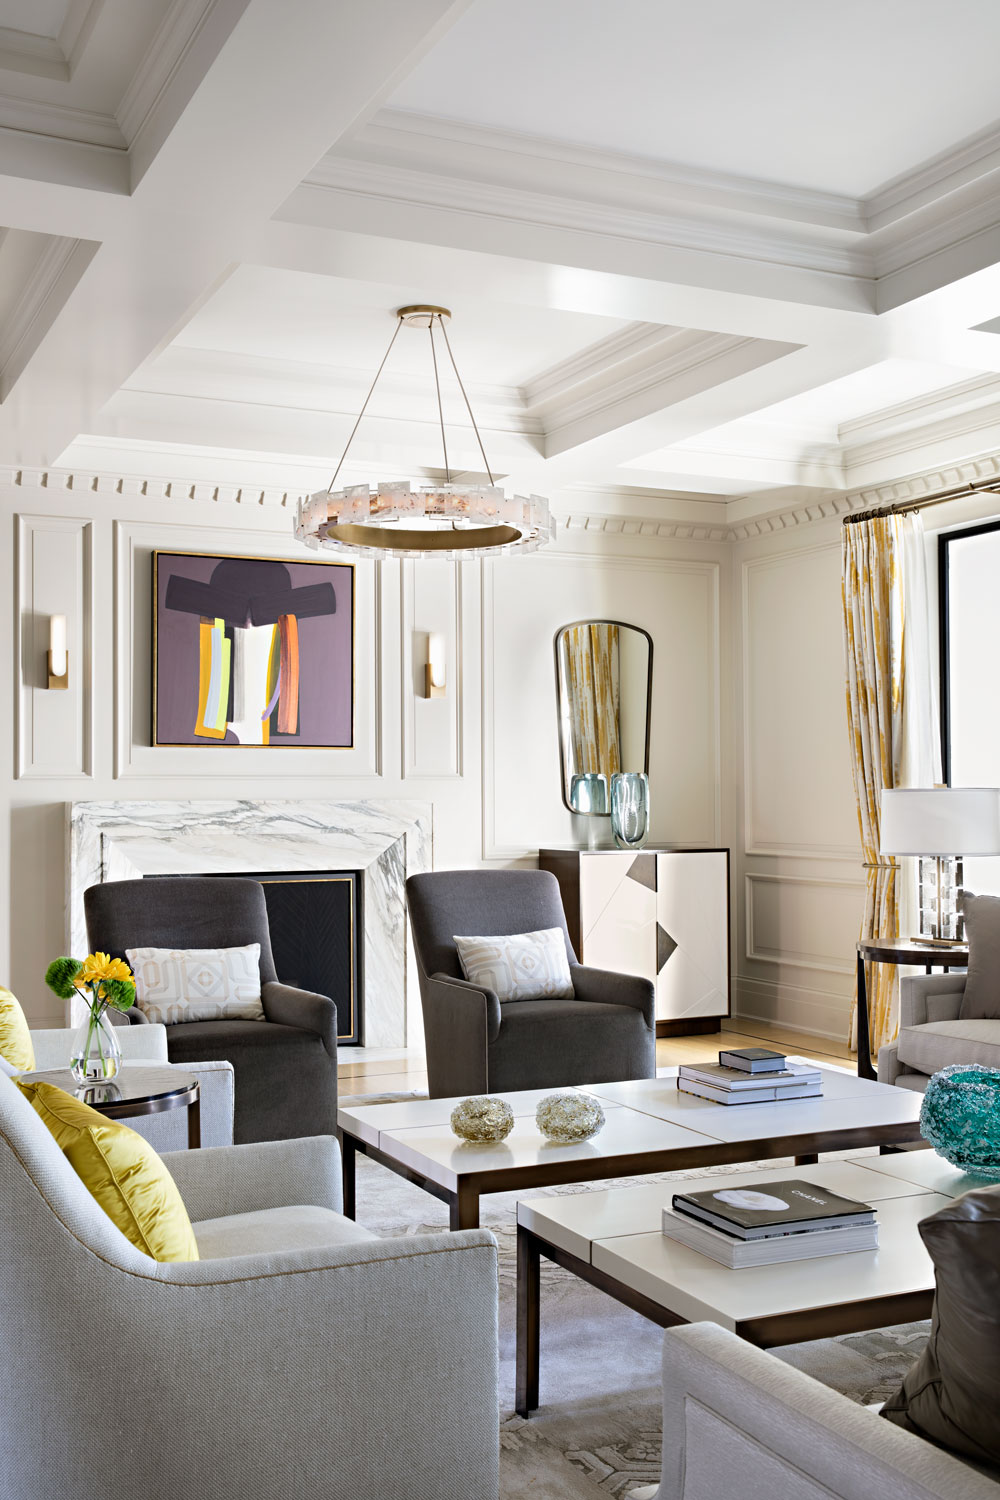 03-paneled-walls-coffered-ceiling-transitional-living-room-gary-drake-general-contractor.jpg